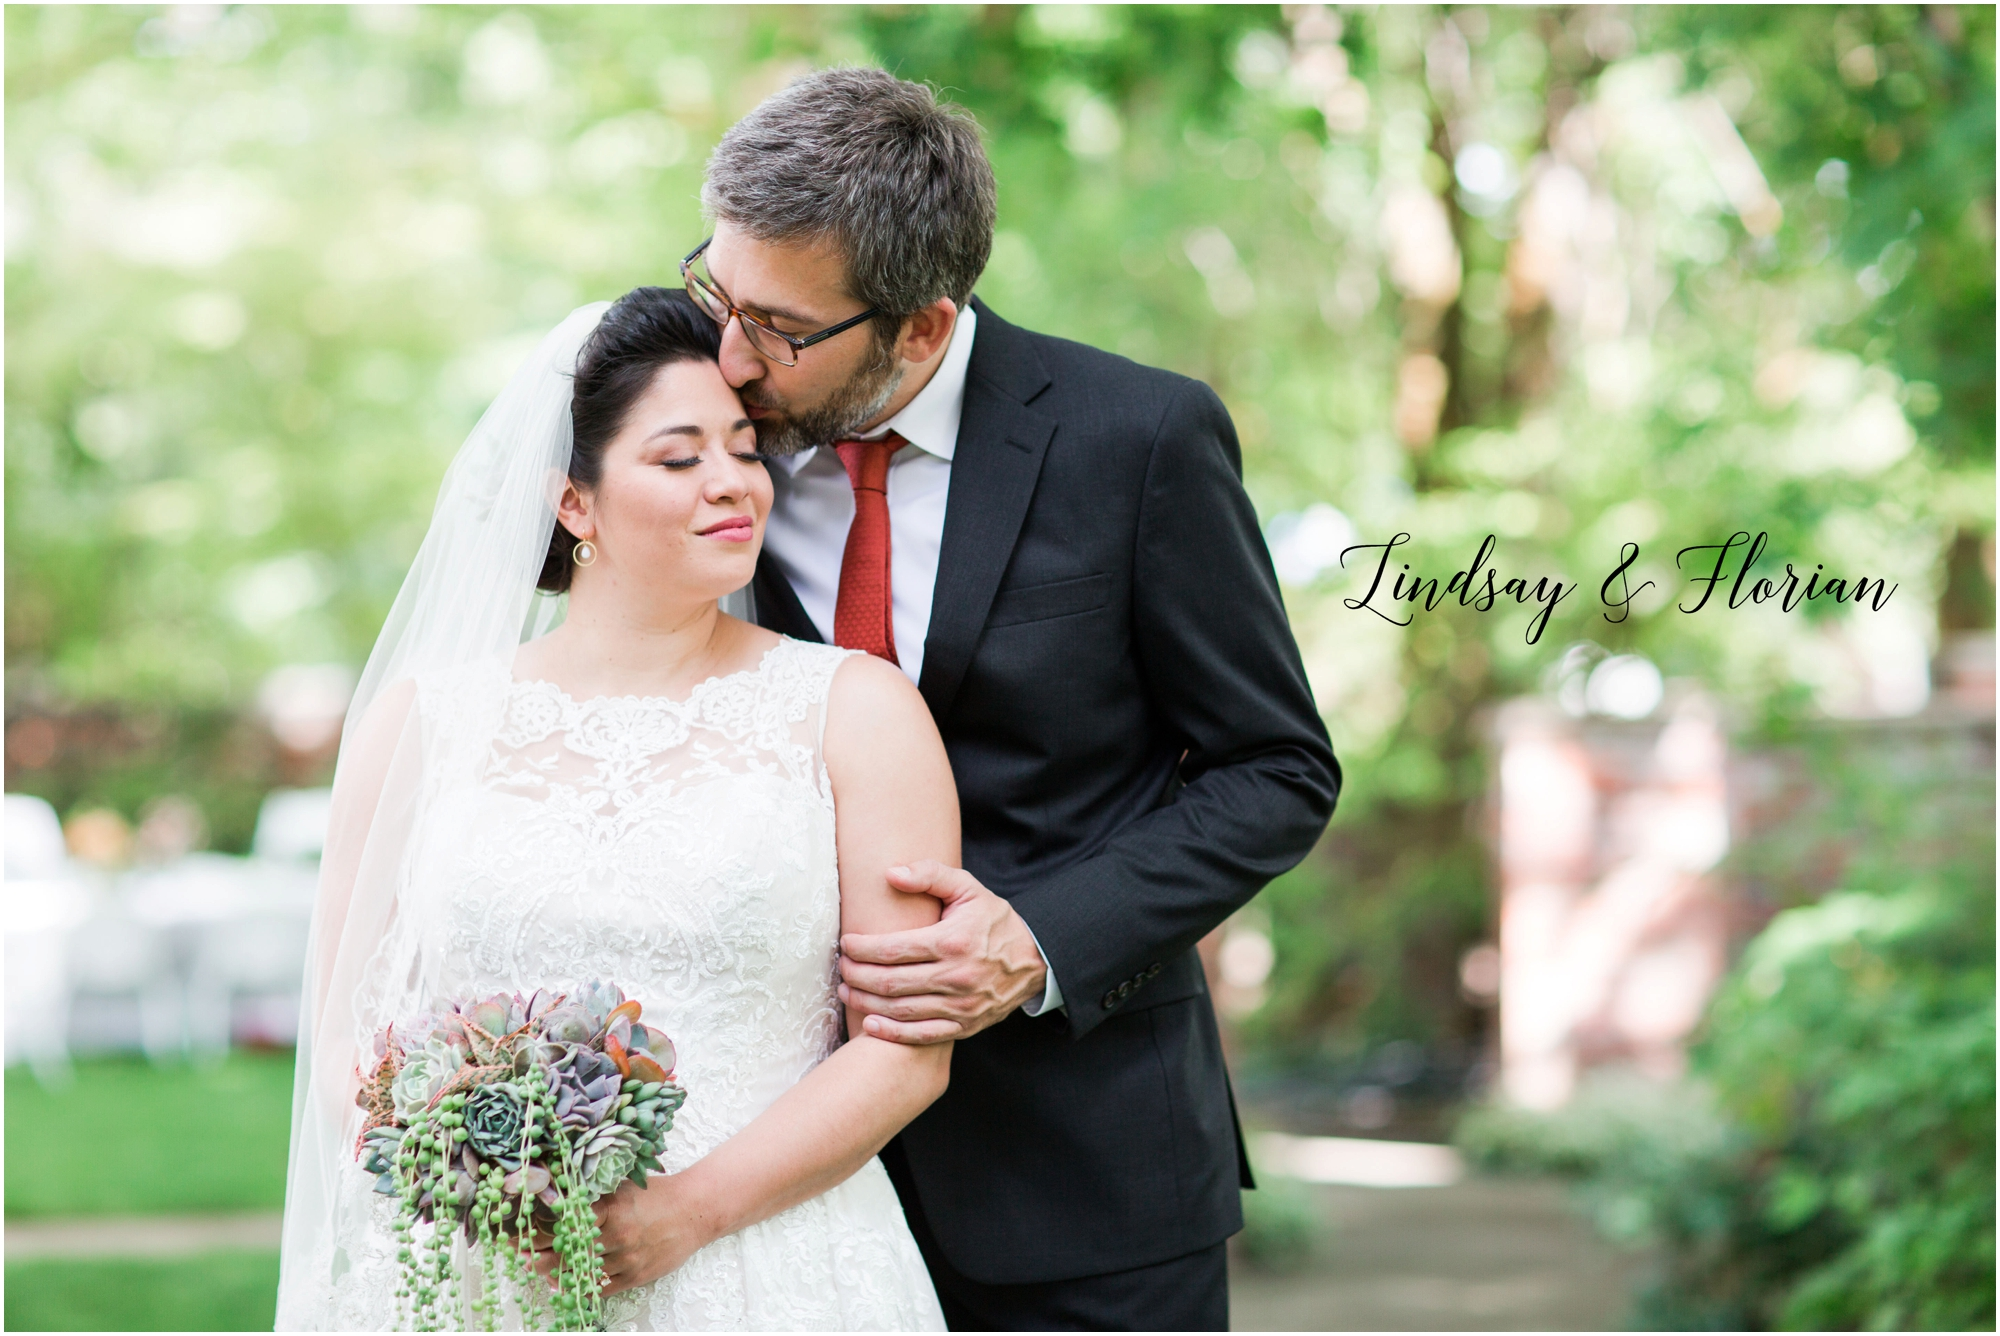 Garden wedding in Ellensburg, WA. Photos by Briana Calderon Photography based in the greater Seattle-Tacoma Area._1370.jpg